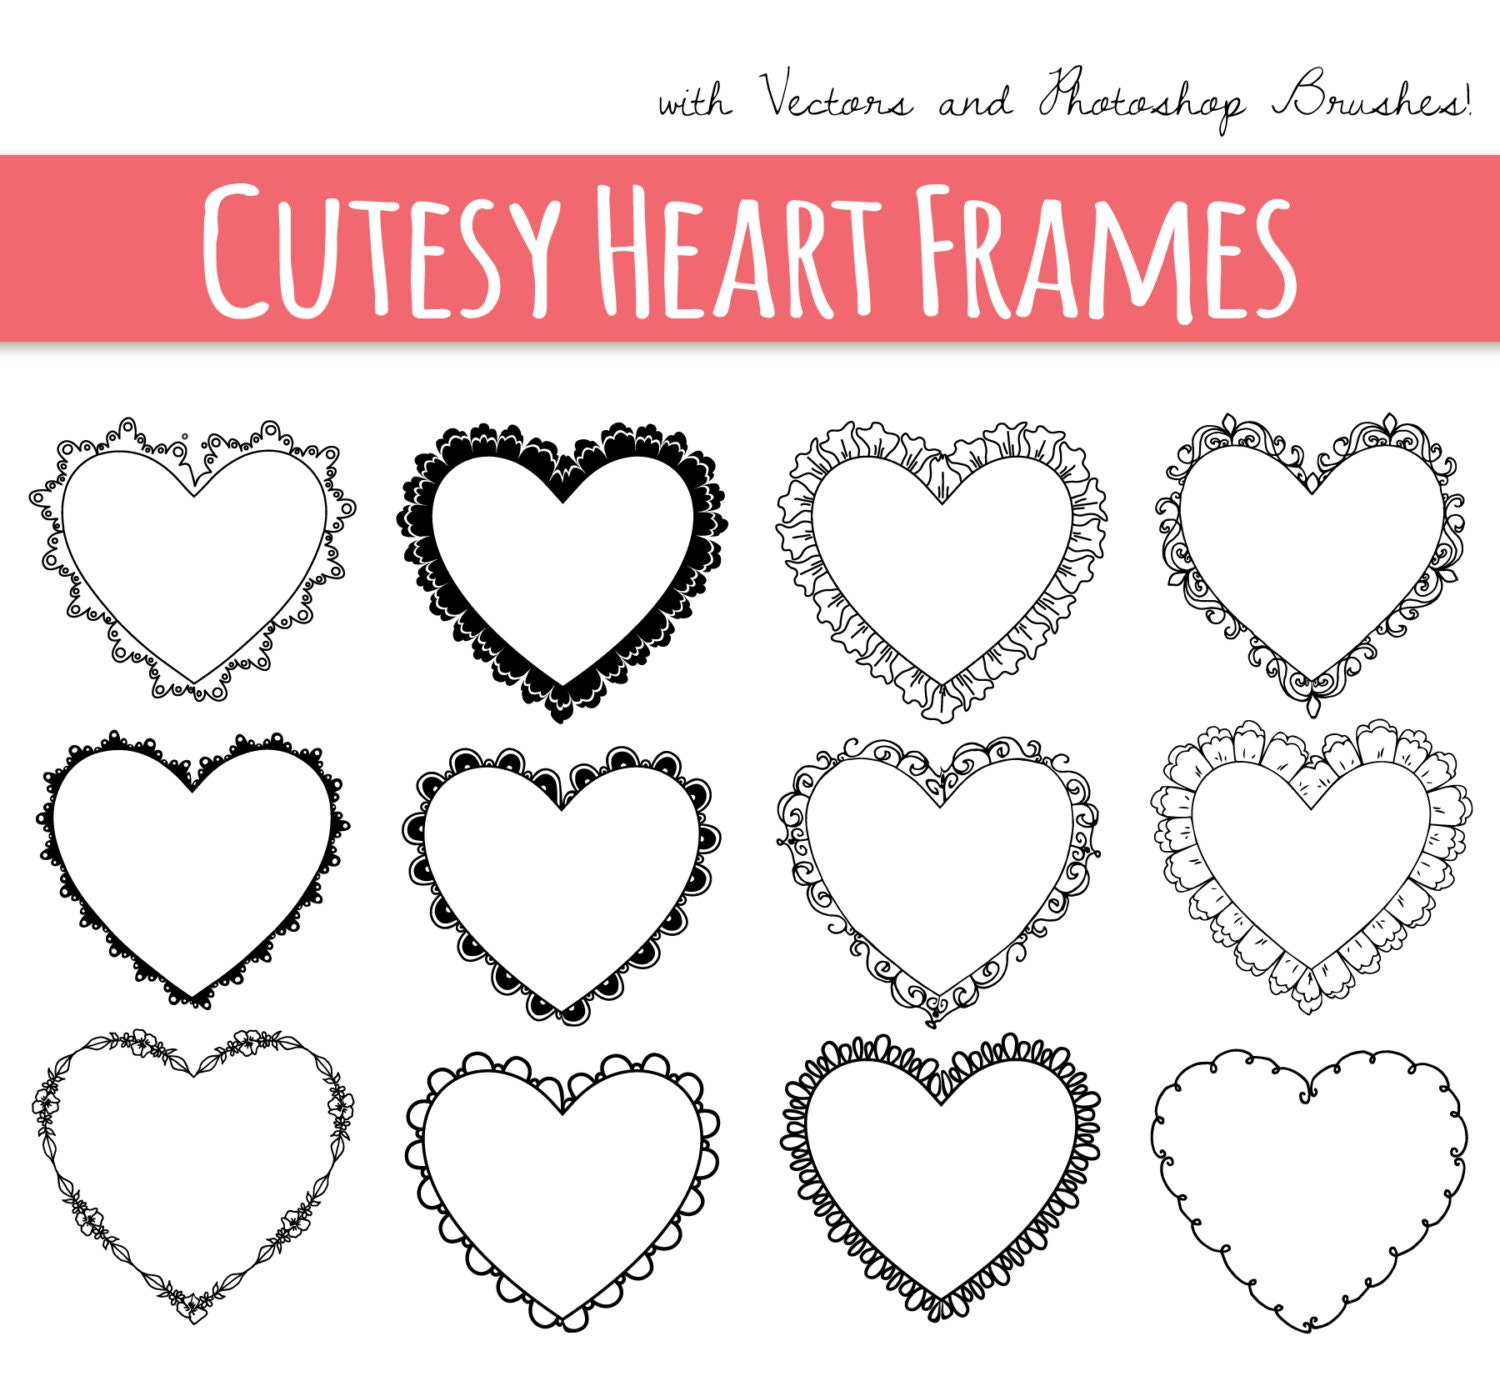 CLIP ART: Heart Frames // Digital Frame // Decorative Border